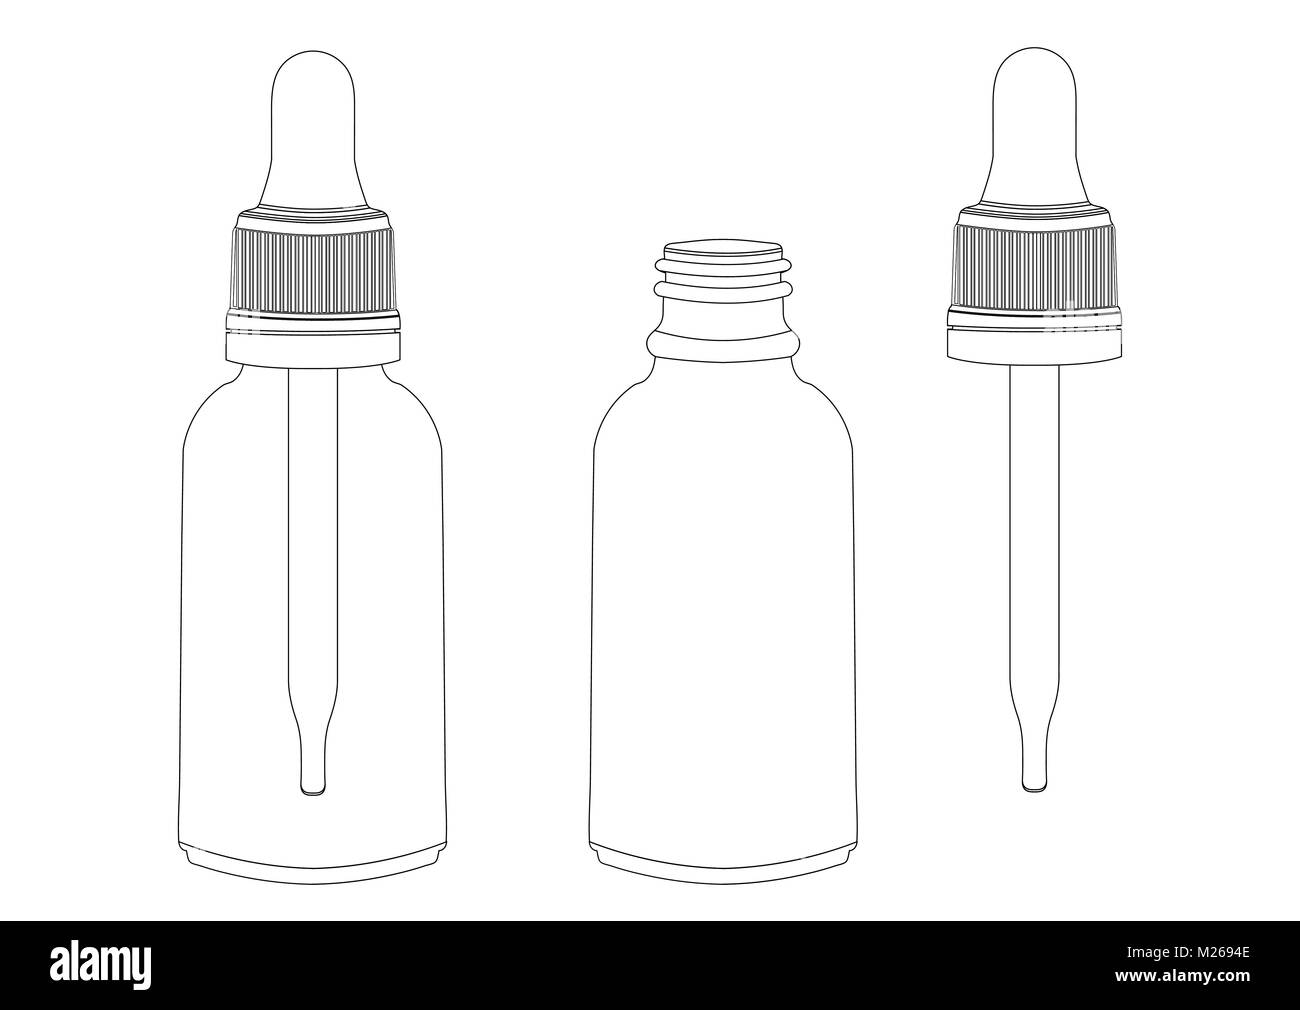 Bottle with a pipette, vector outline drawing, contour picture, coloring, black and white illustration. Transparent - Stock Image